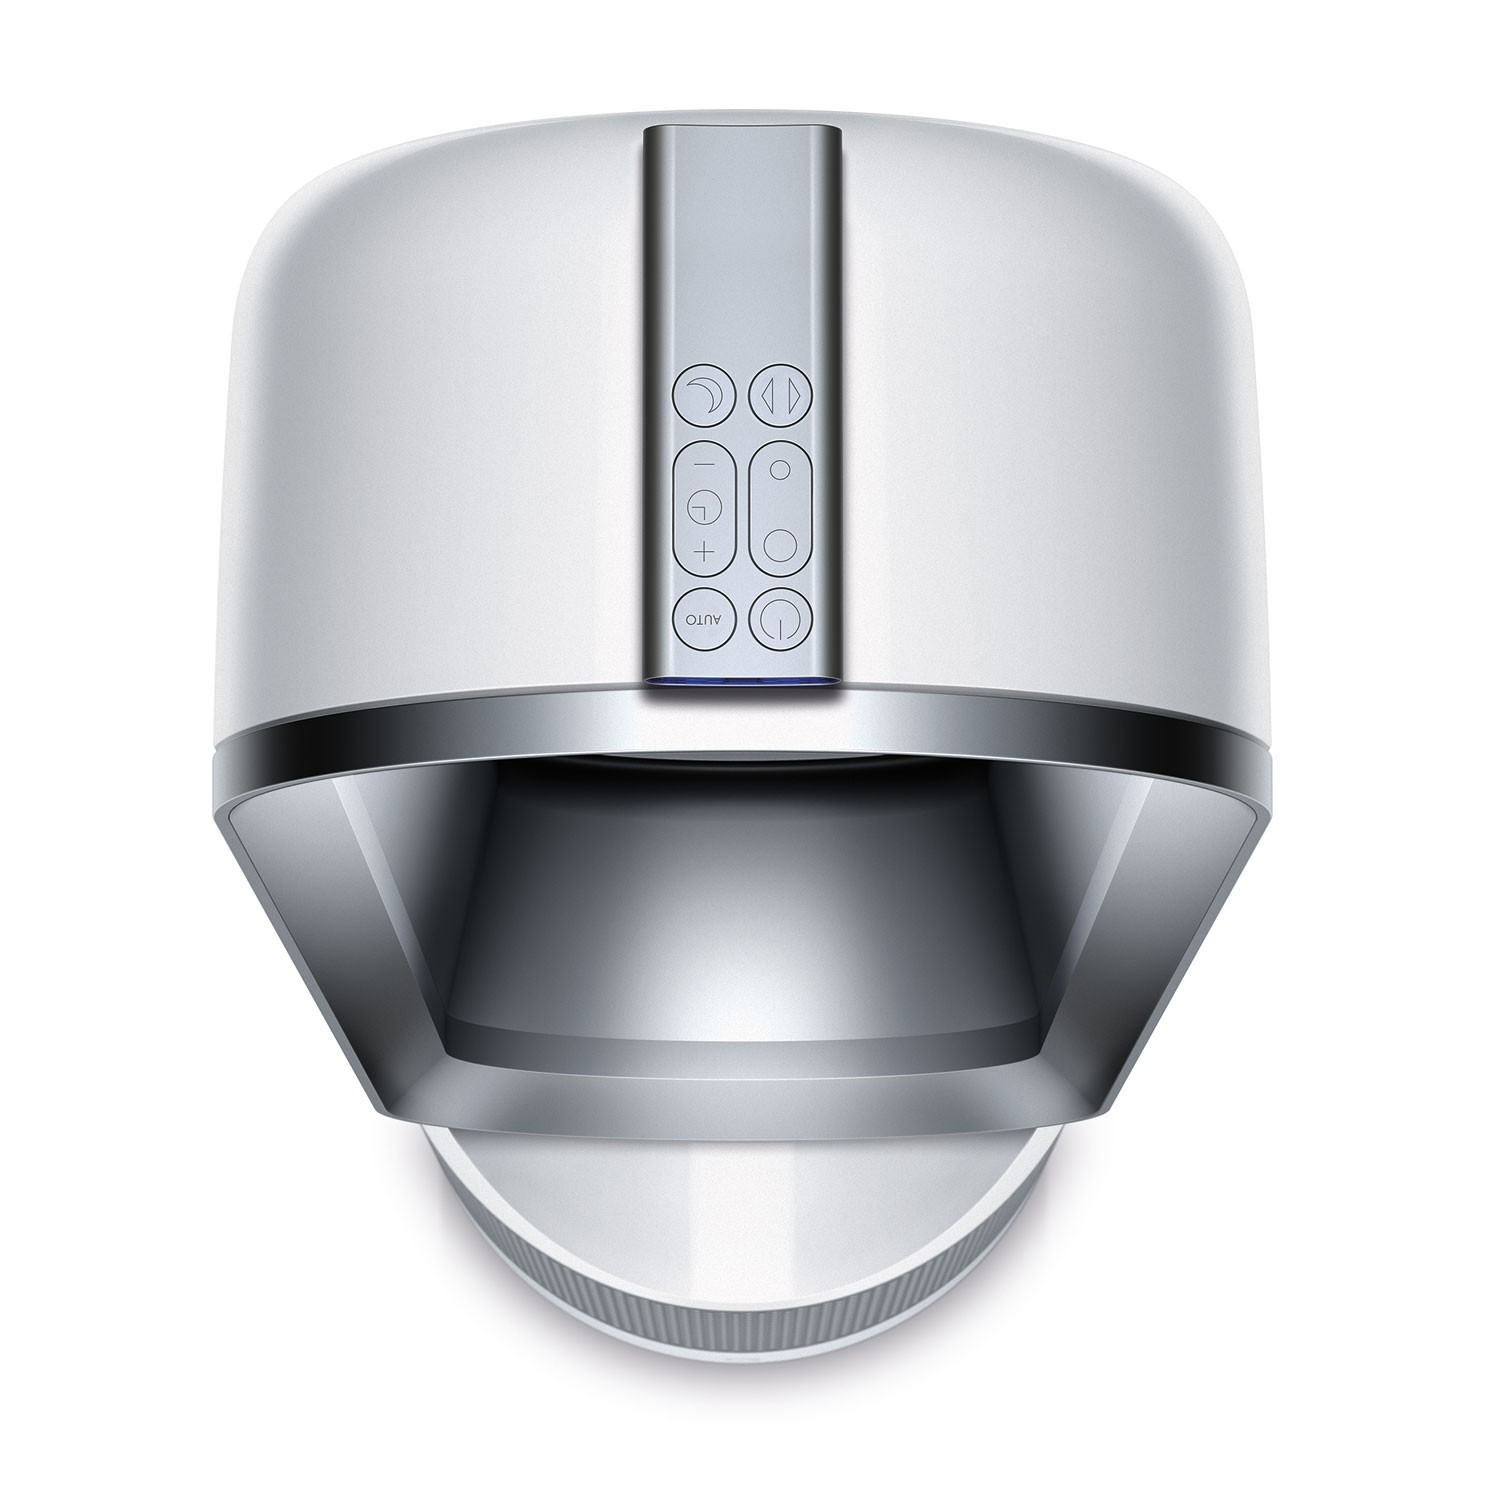 dyson hp02 pure hot cool link purifier fan heater white s. Black Bedroom Furniture Sets. Home Design Ideas